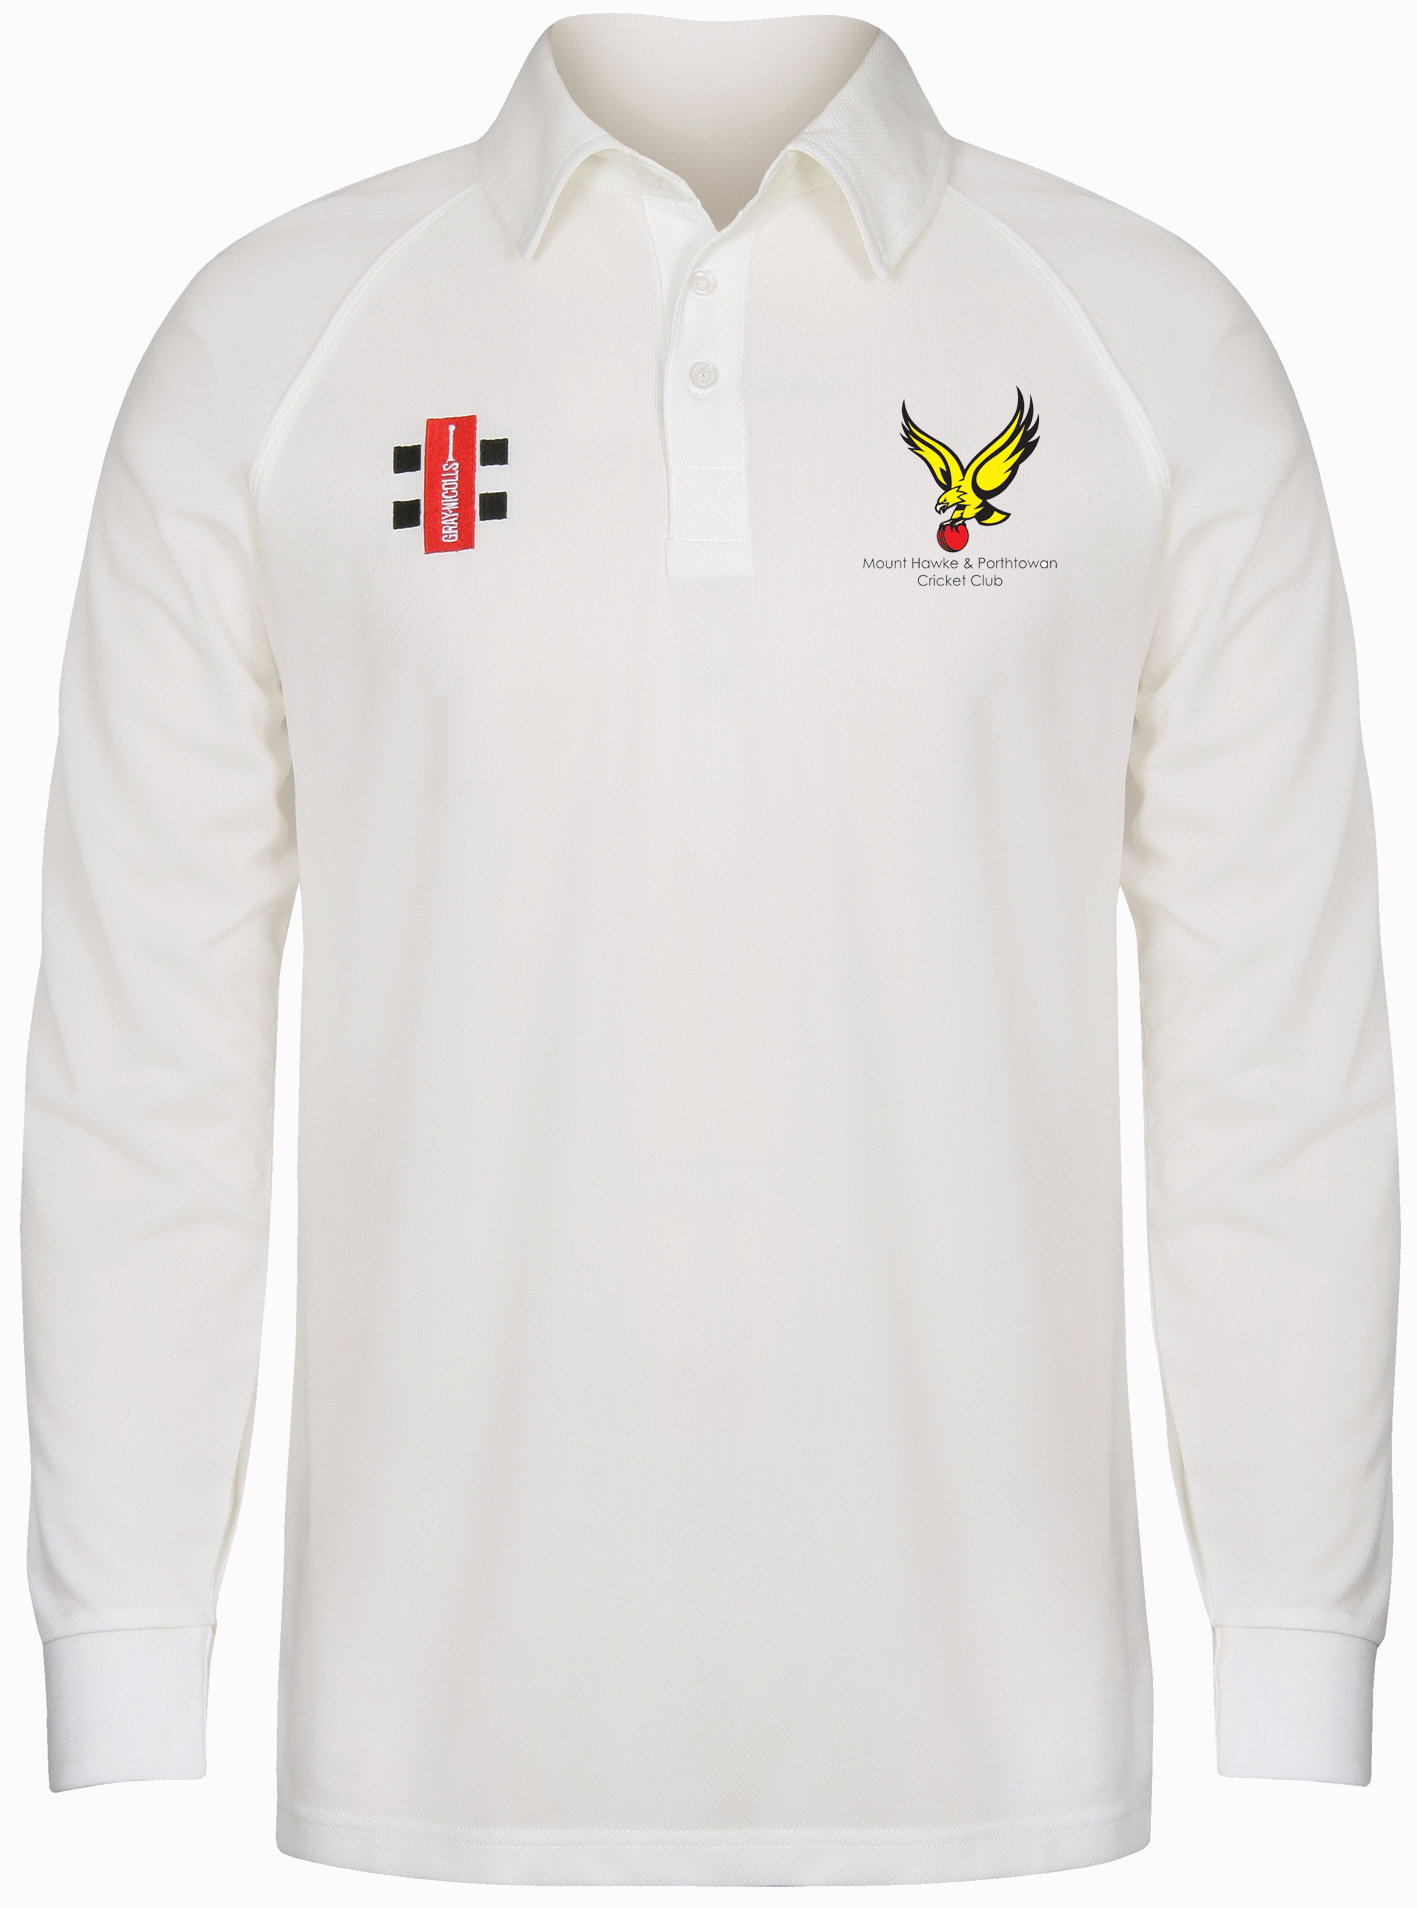 MHCC Long Sleeved Playing Shirt